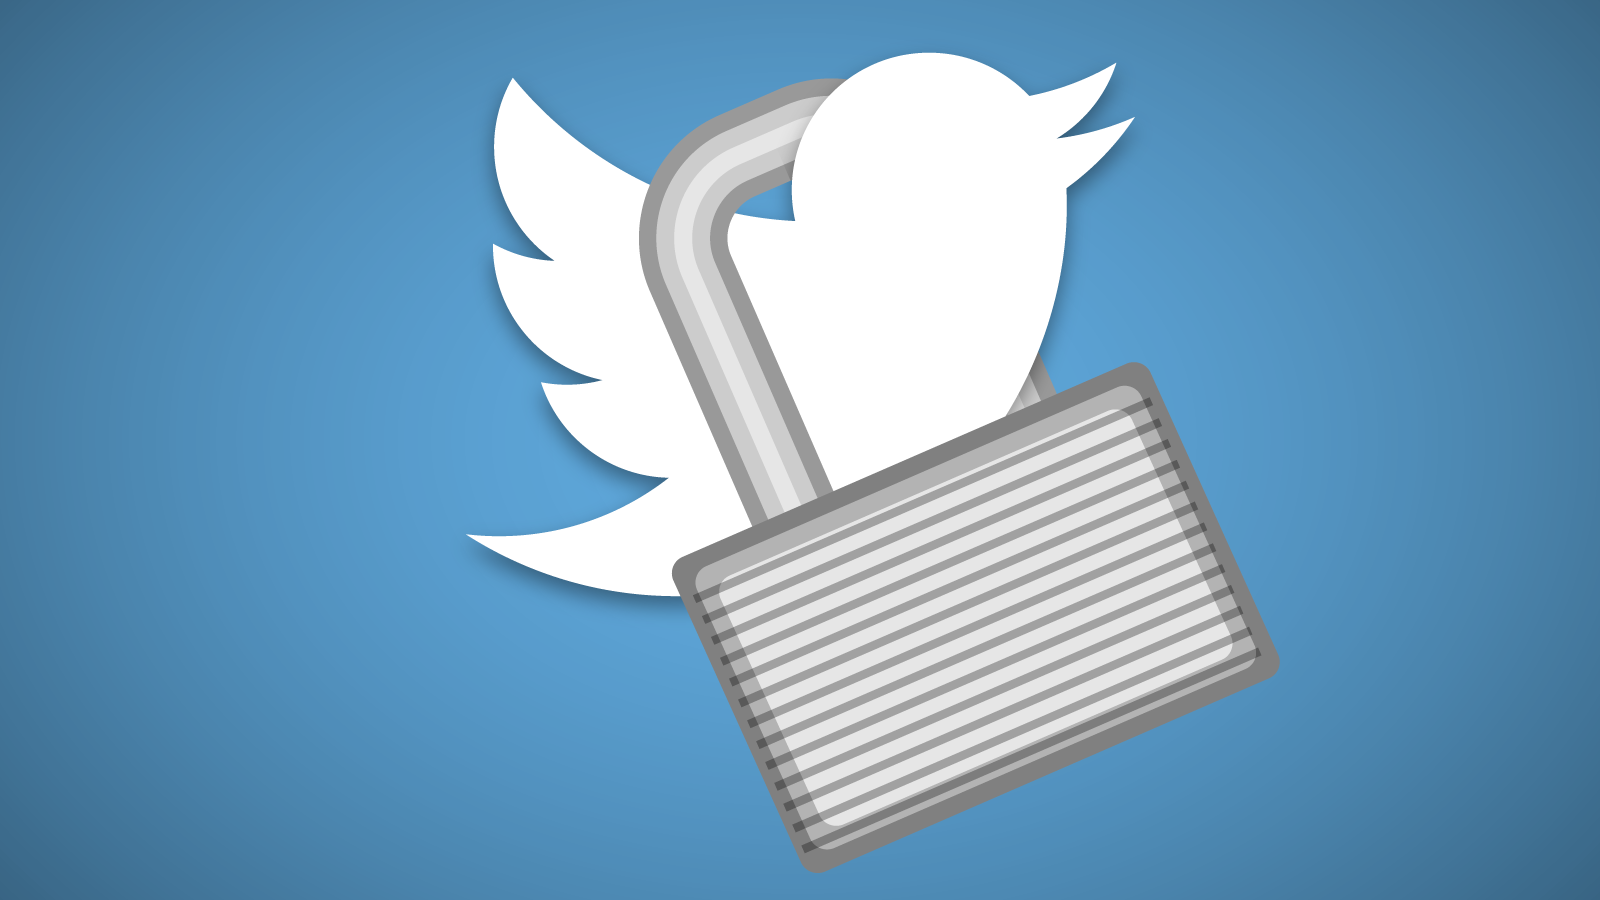 Twitter Working on End-to-end Encrypted Message Feature